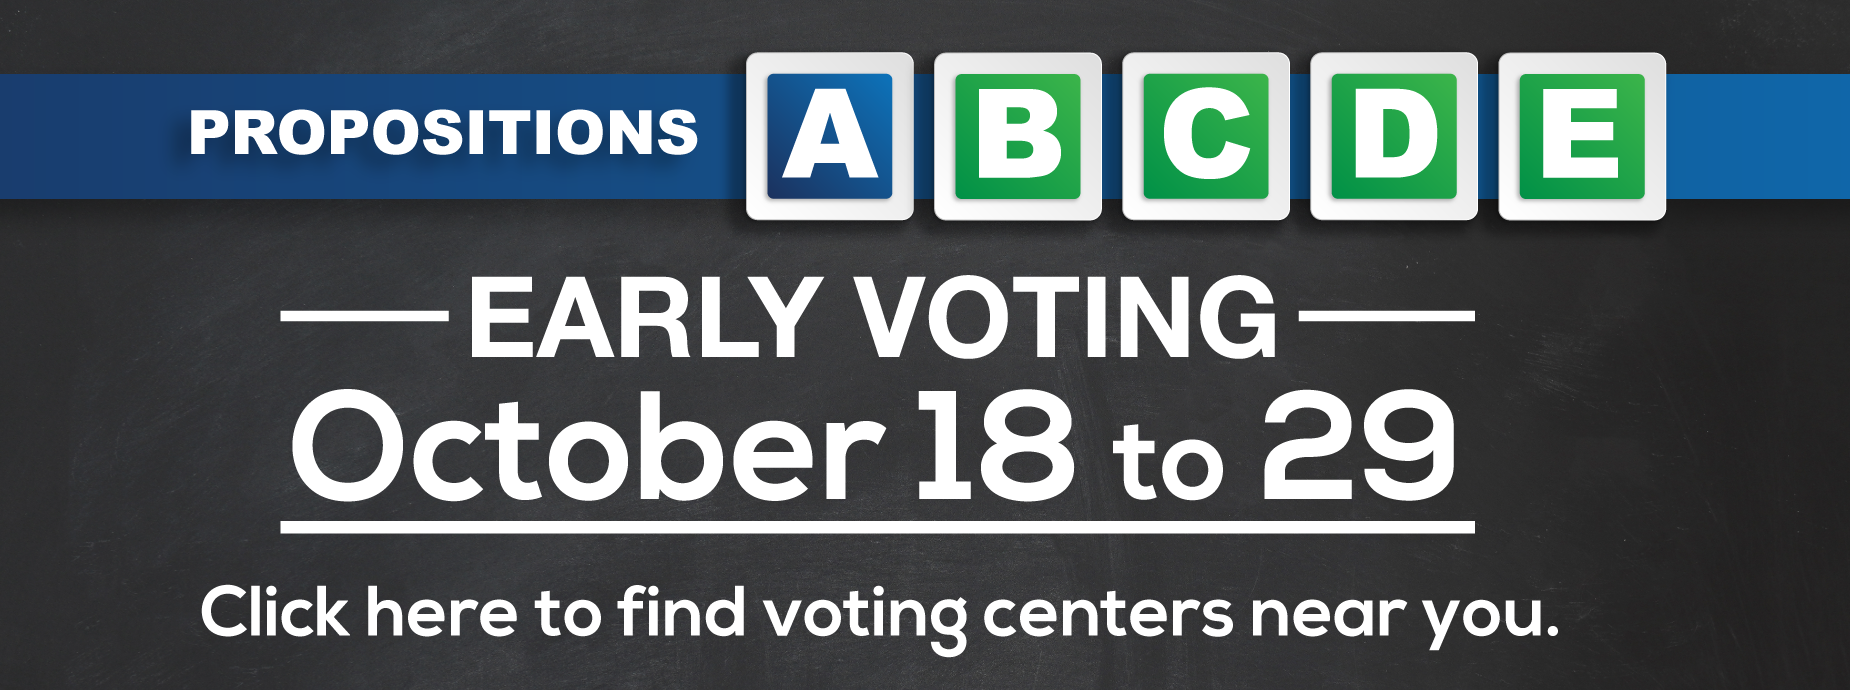 Early Voting Oct 18-29